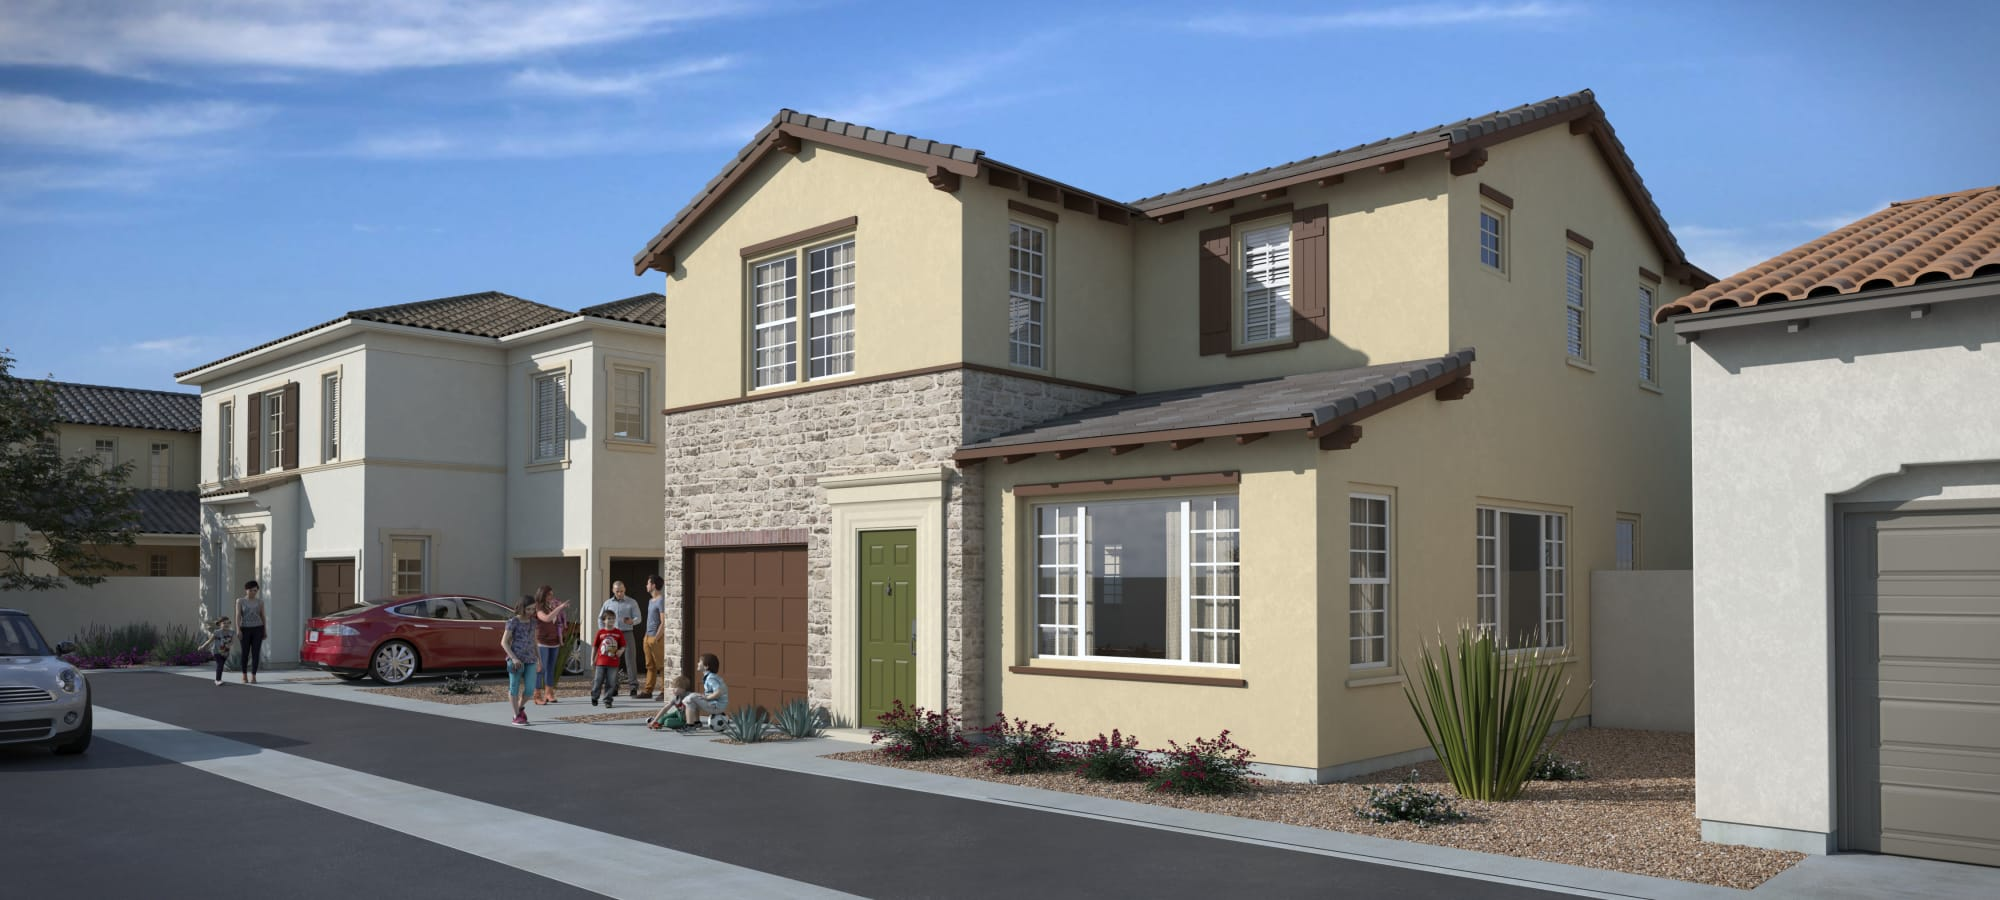 Model Home Rendering at Las Casas at Windrose in Litchfield Park, Arizona